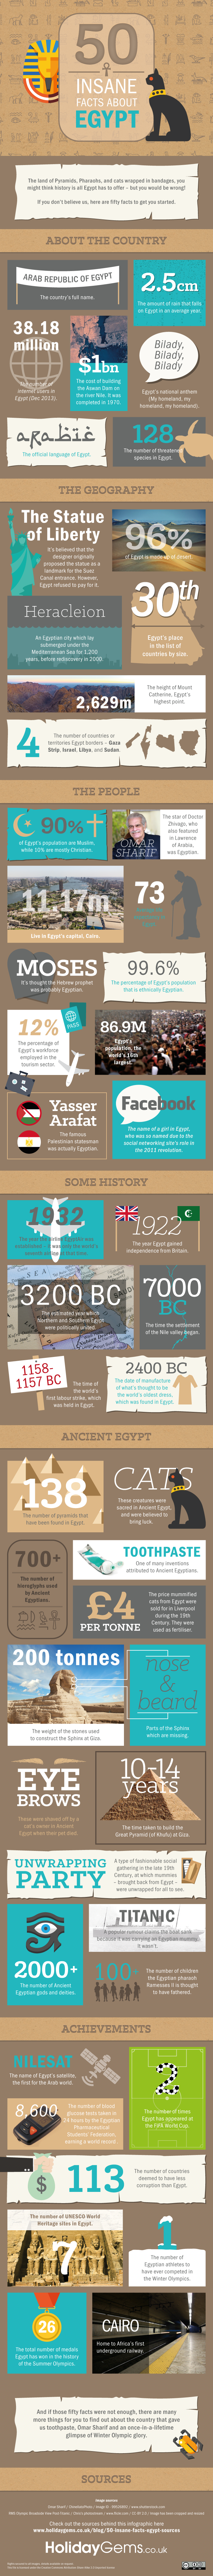 50 Insane Facts About Egypt by Holiday Gems